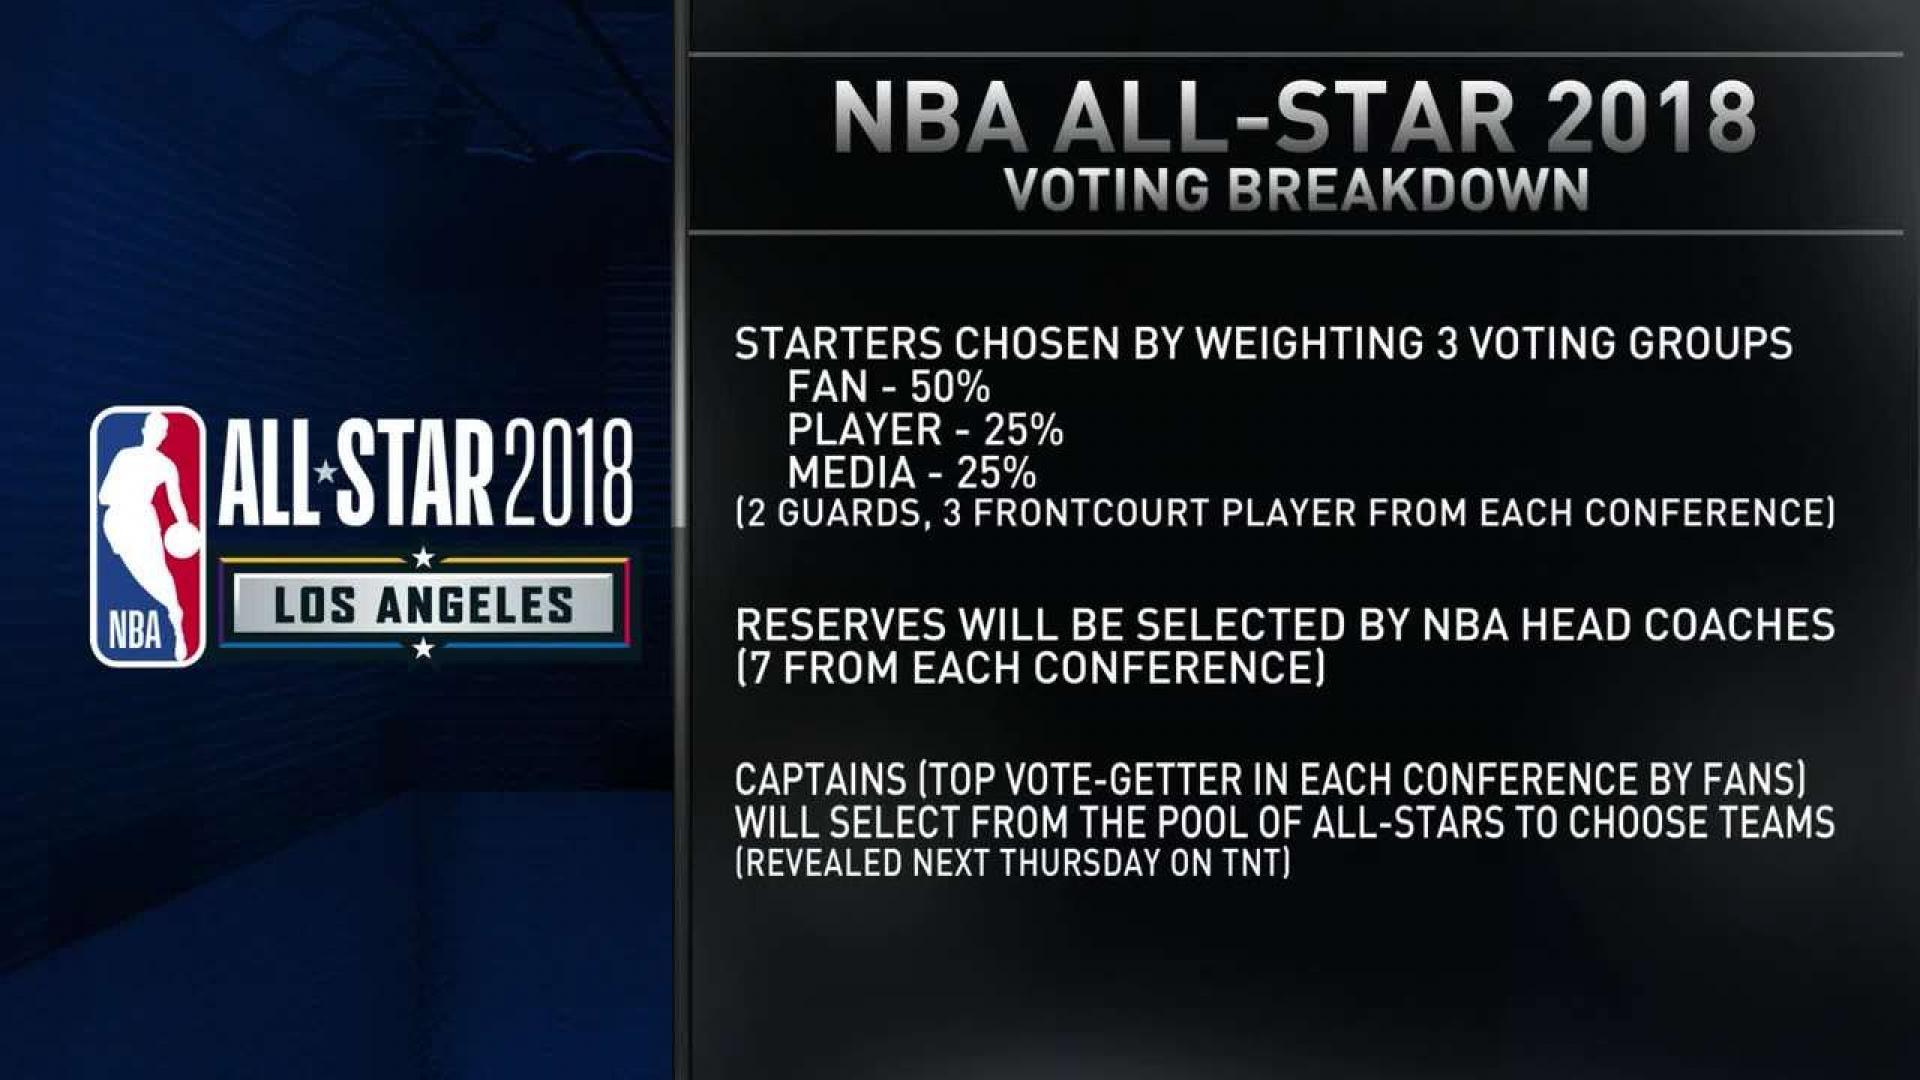 All Star Game Voting Rules | GamesWorld